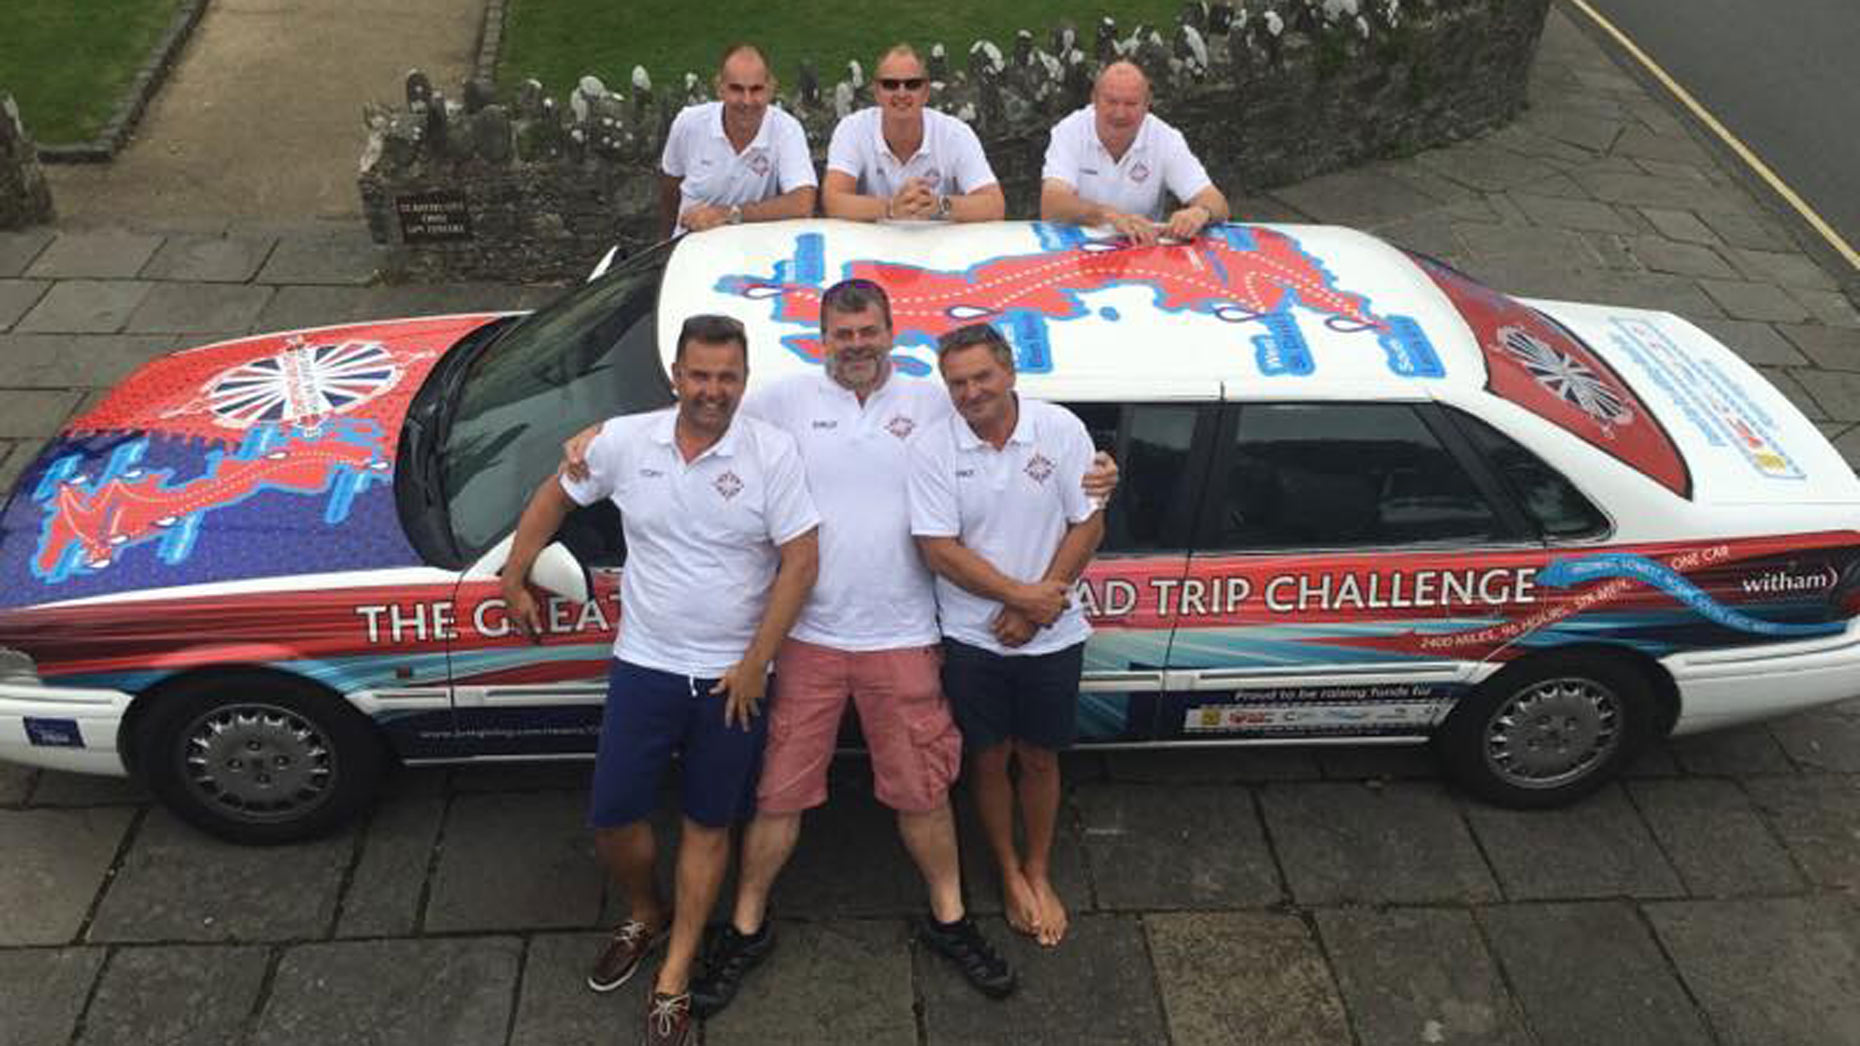 The group has raised almost £11,000 for six charities close to their hearts.